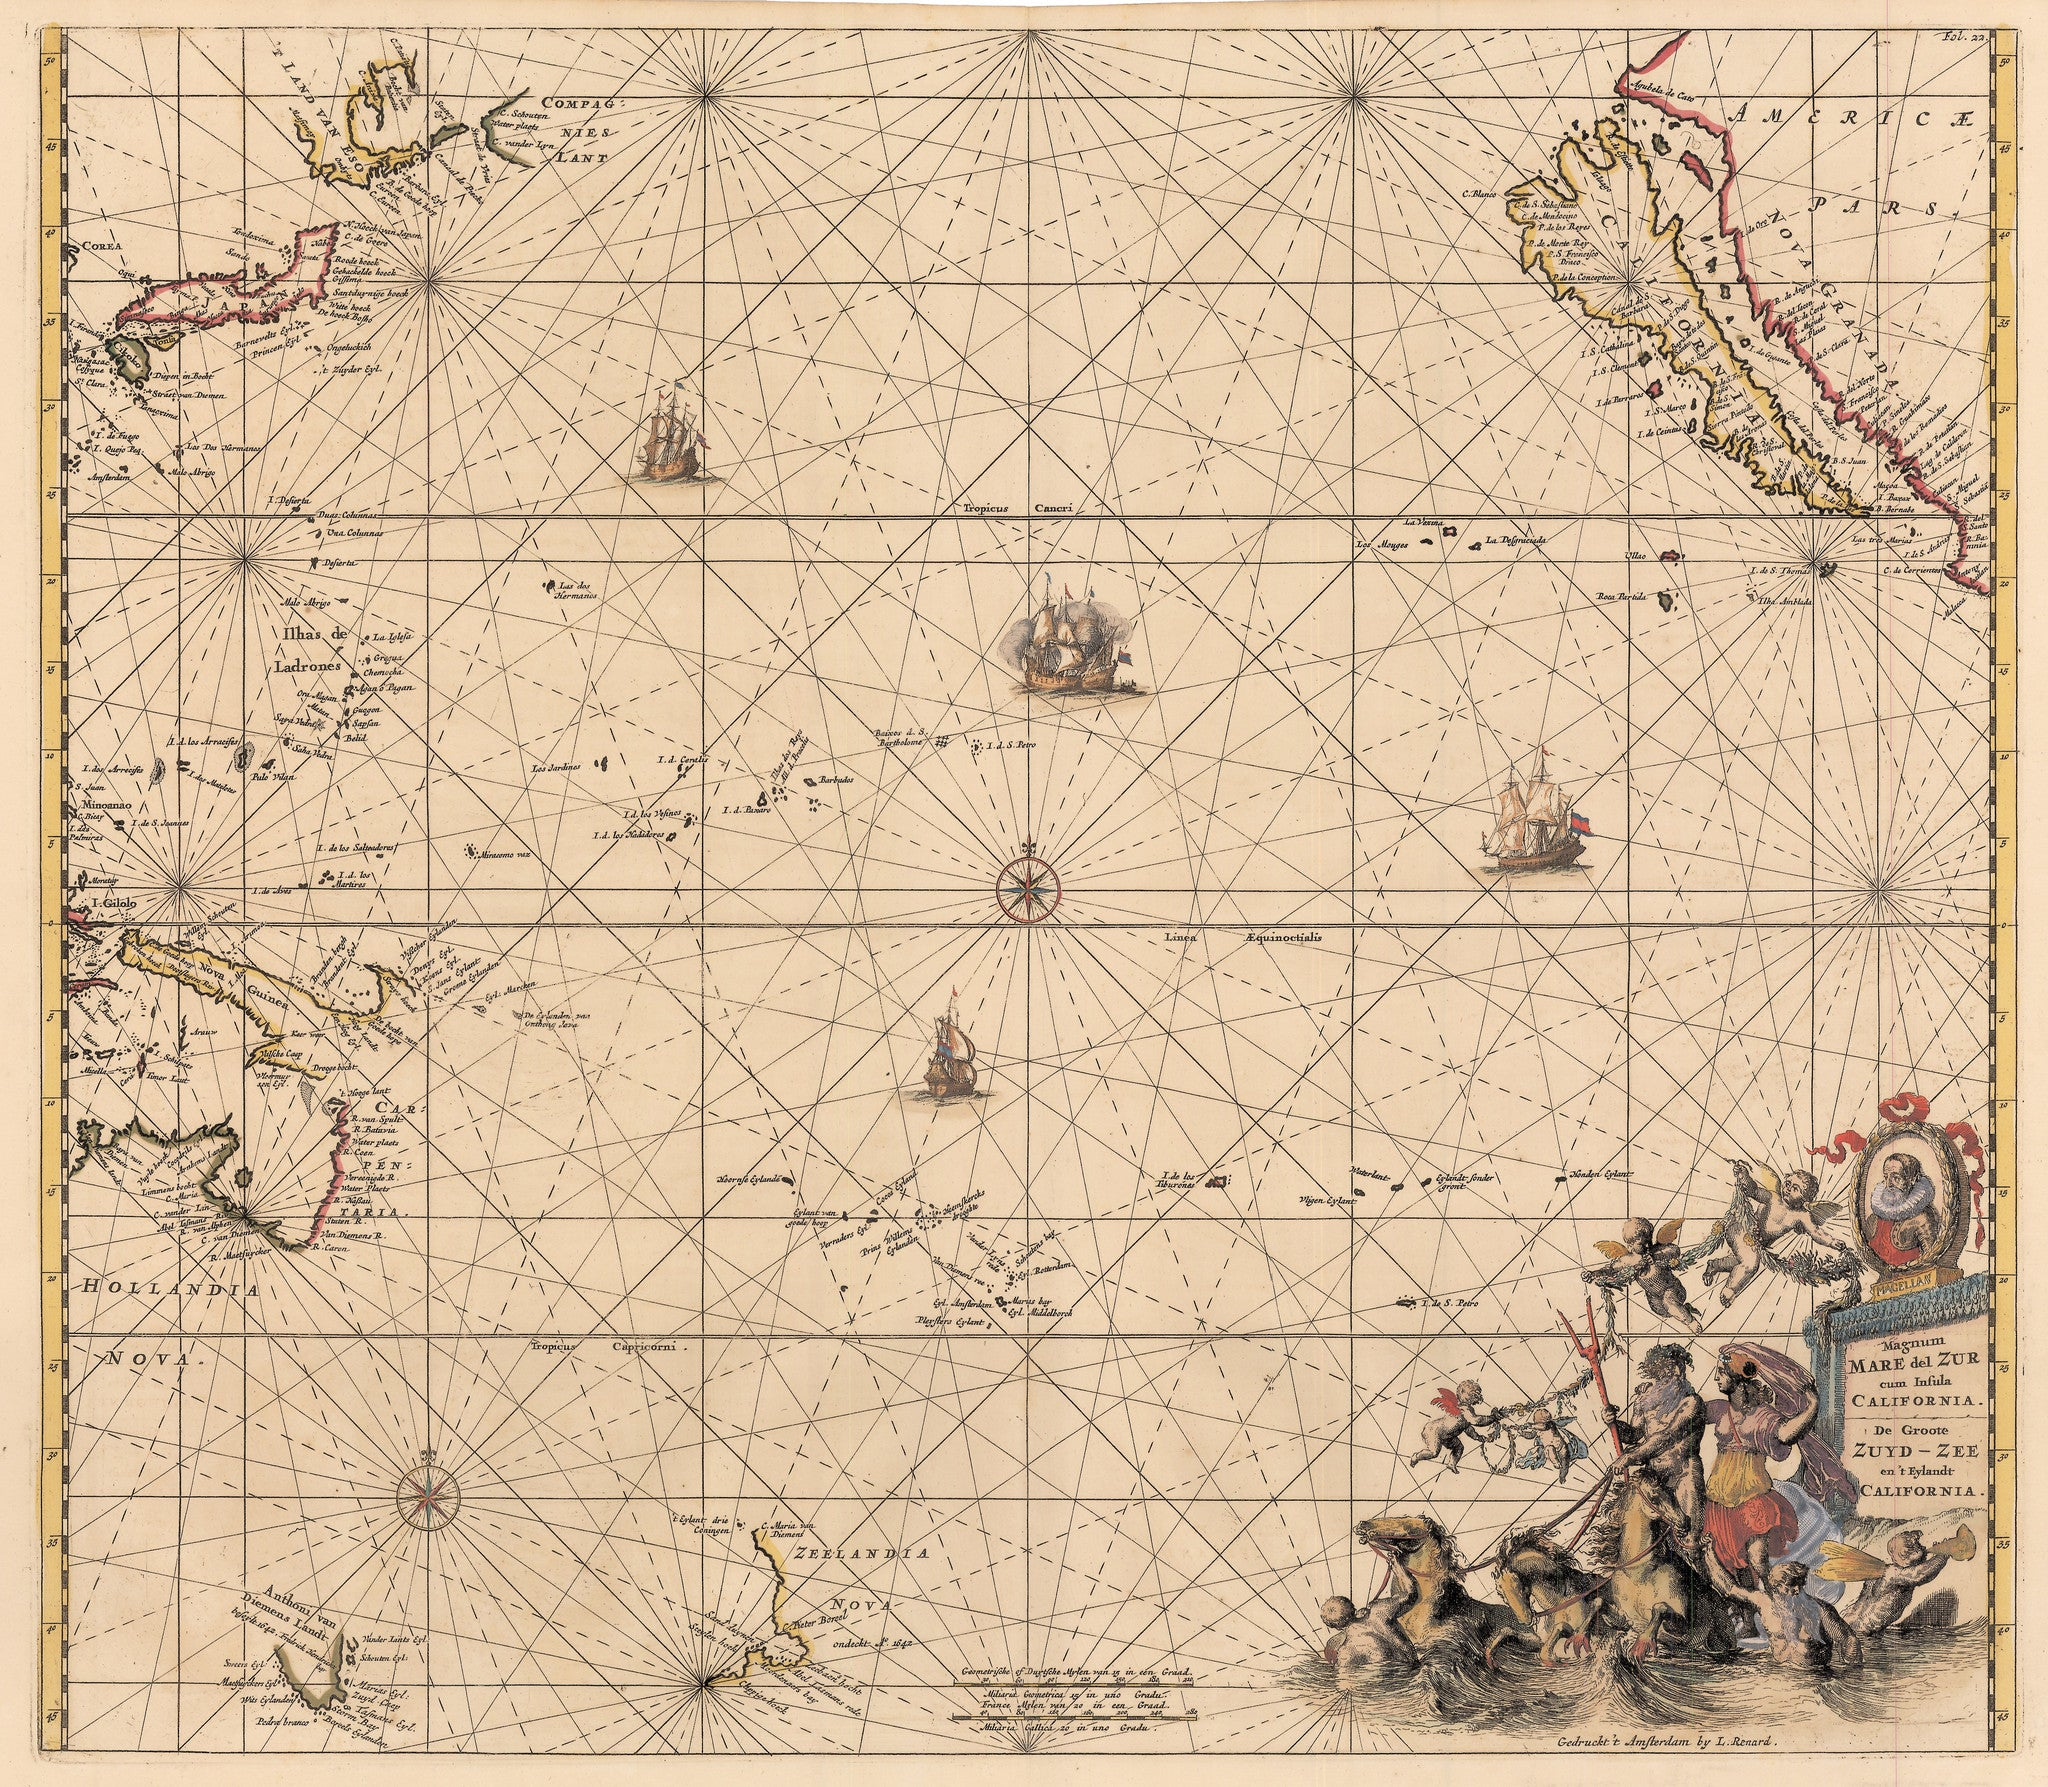 Authentic Antique Map of the Pacific Ocean showing California as an island: Magnum Mare del Zur cum Insula California... By: Renard / De Wit Date: 1715 (circa)